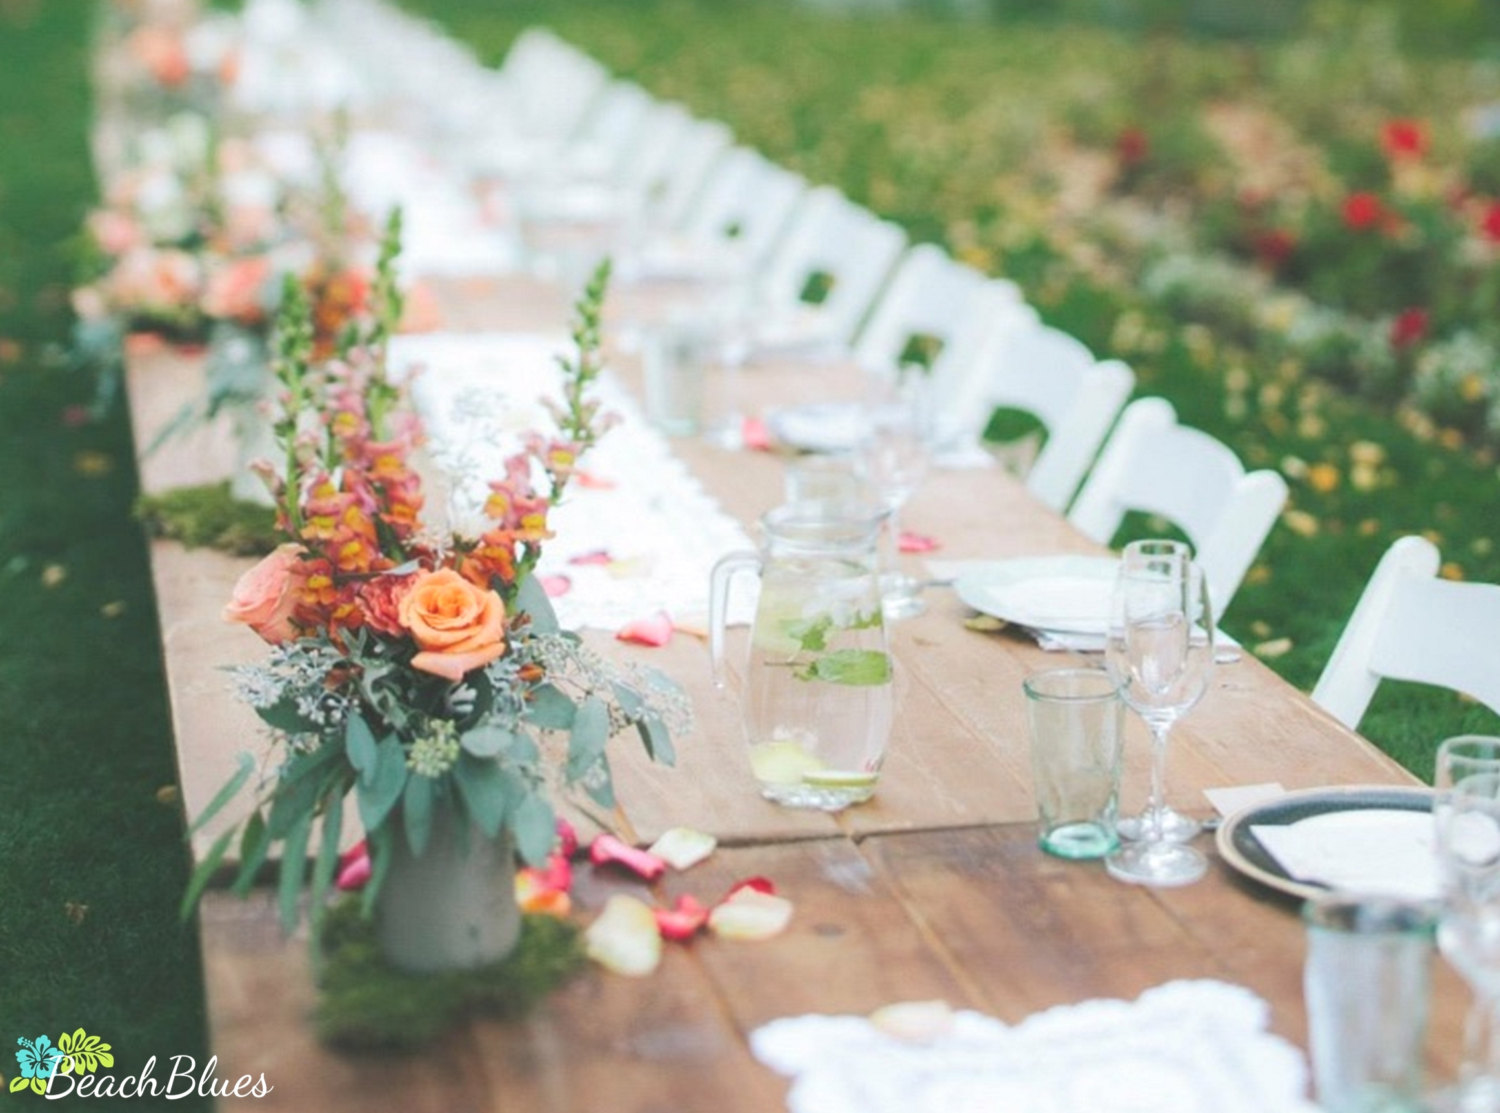 Where To Put Bouquet During Reception?